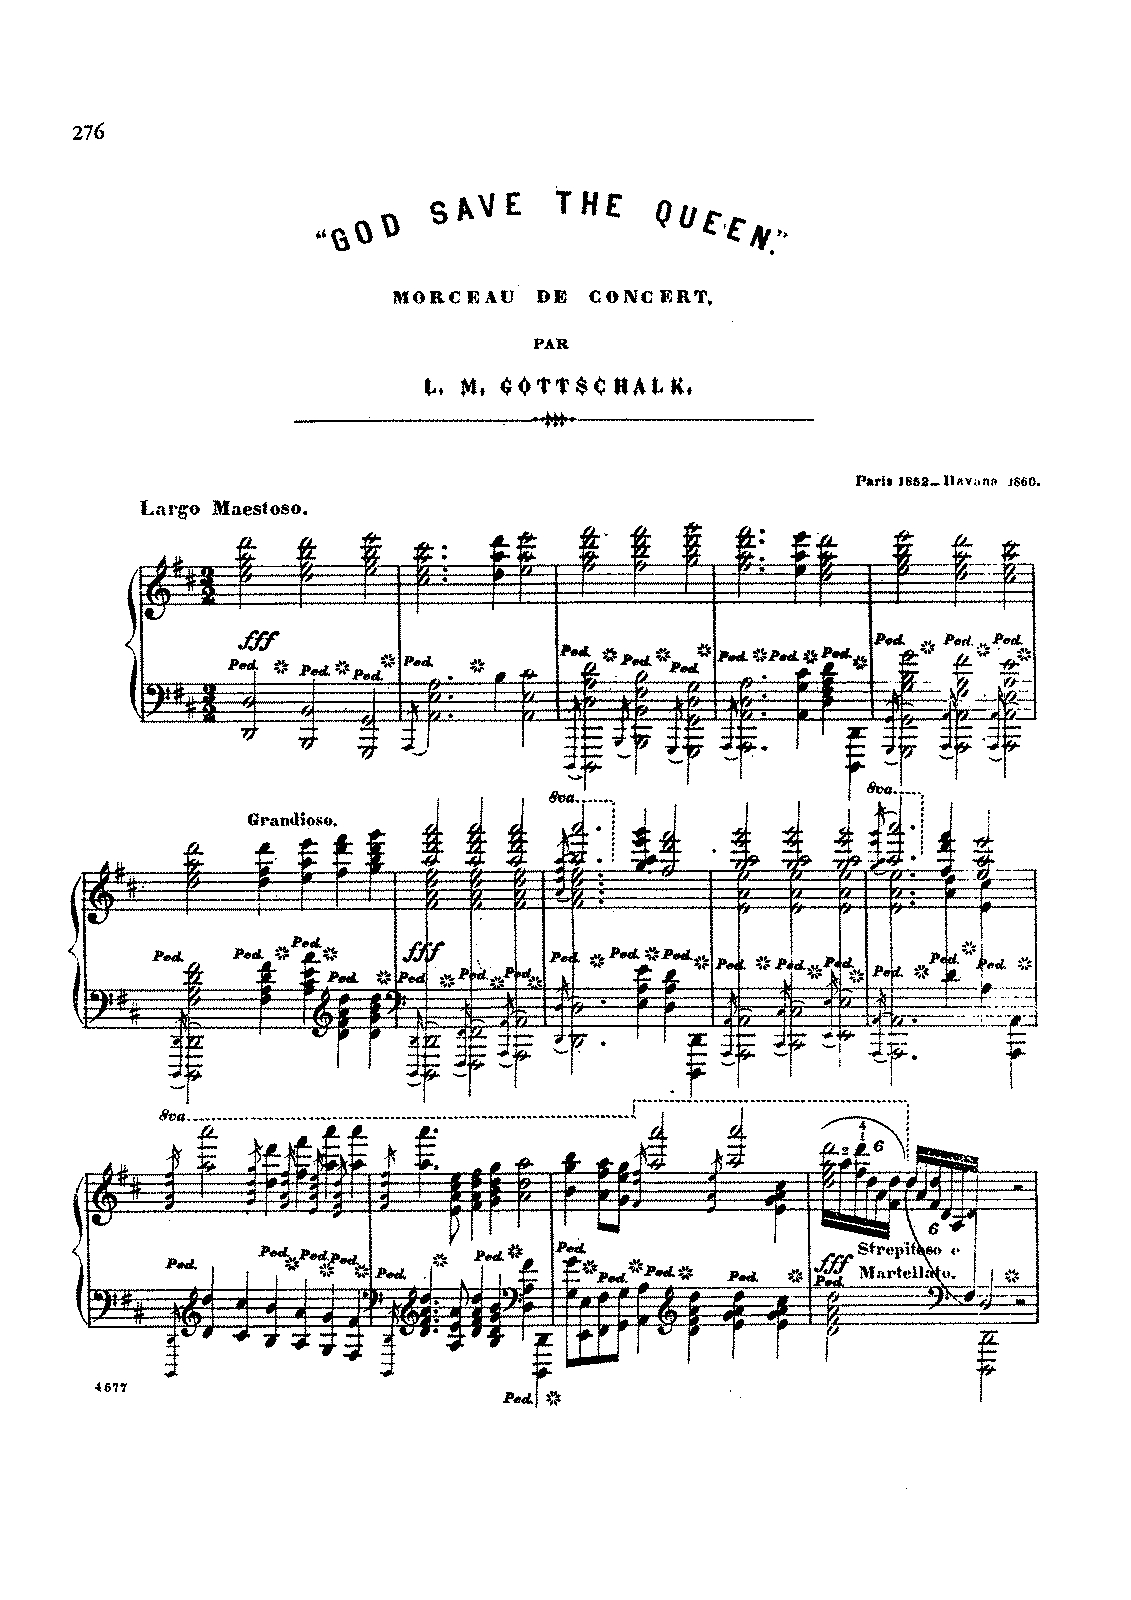 Gottschalk - Op.41- God Save the Queen.pdf